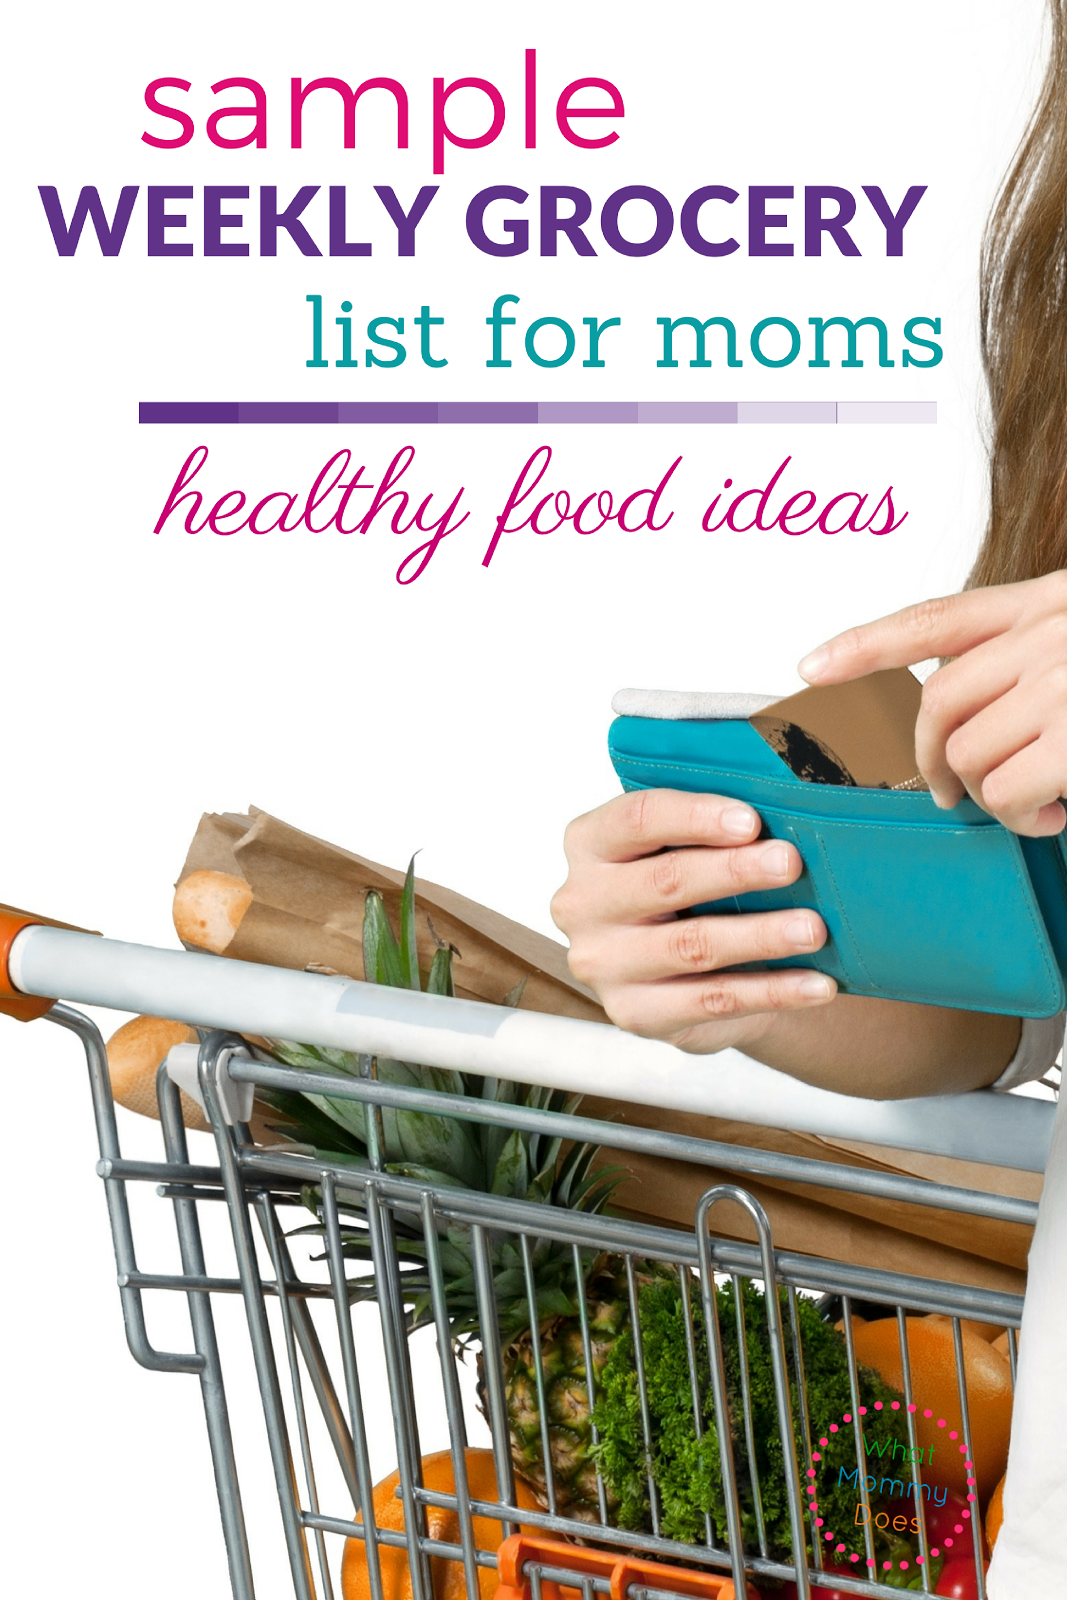 Wow, this sample grocery list for a healthy lifestyle is amazing! Check out the healthy food ideas to lose weight or simply eat better.